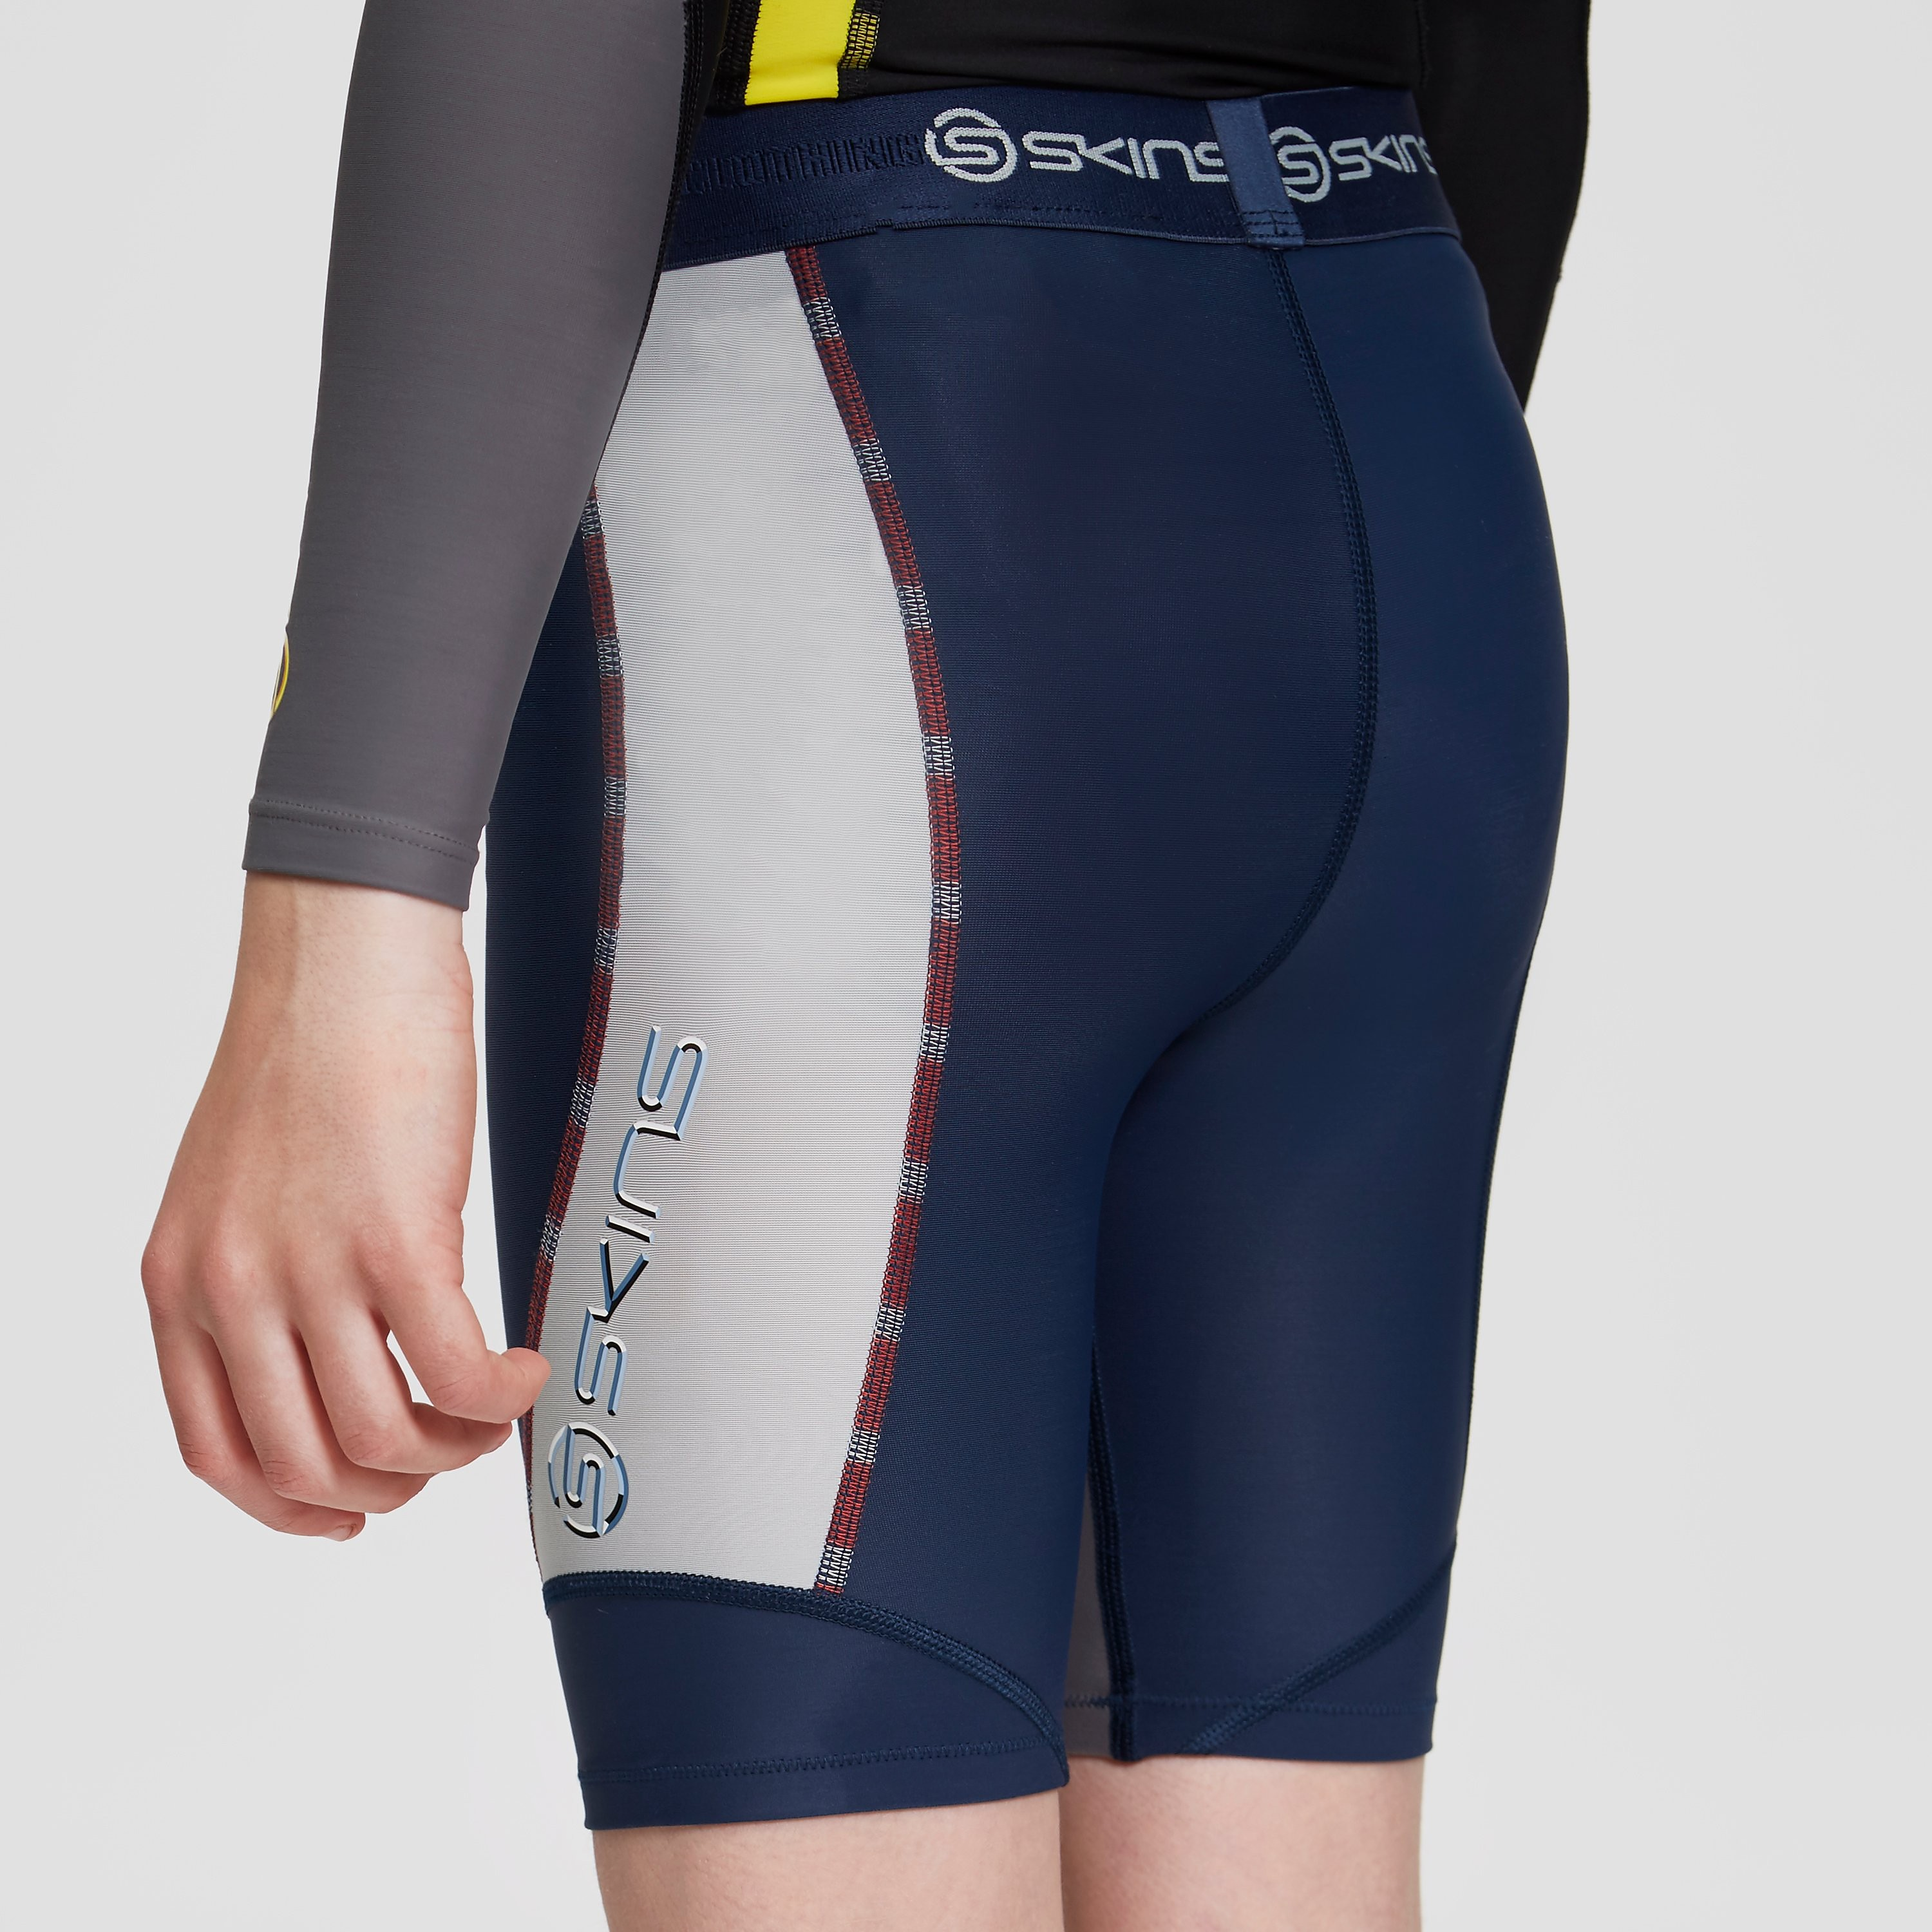 Skins Half Compression Youth Tights